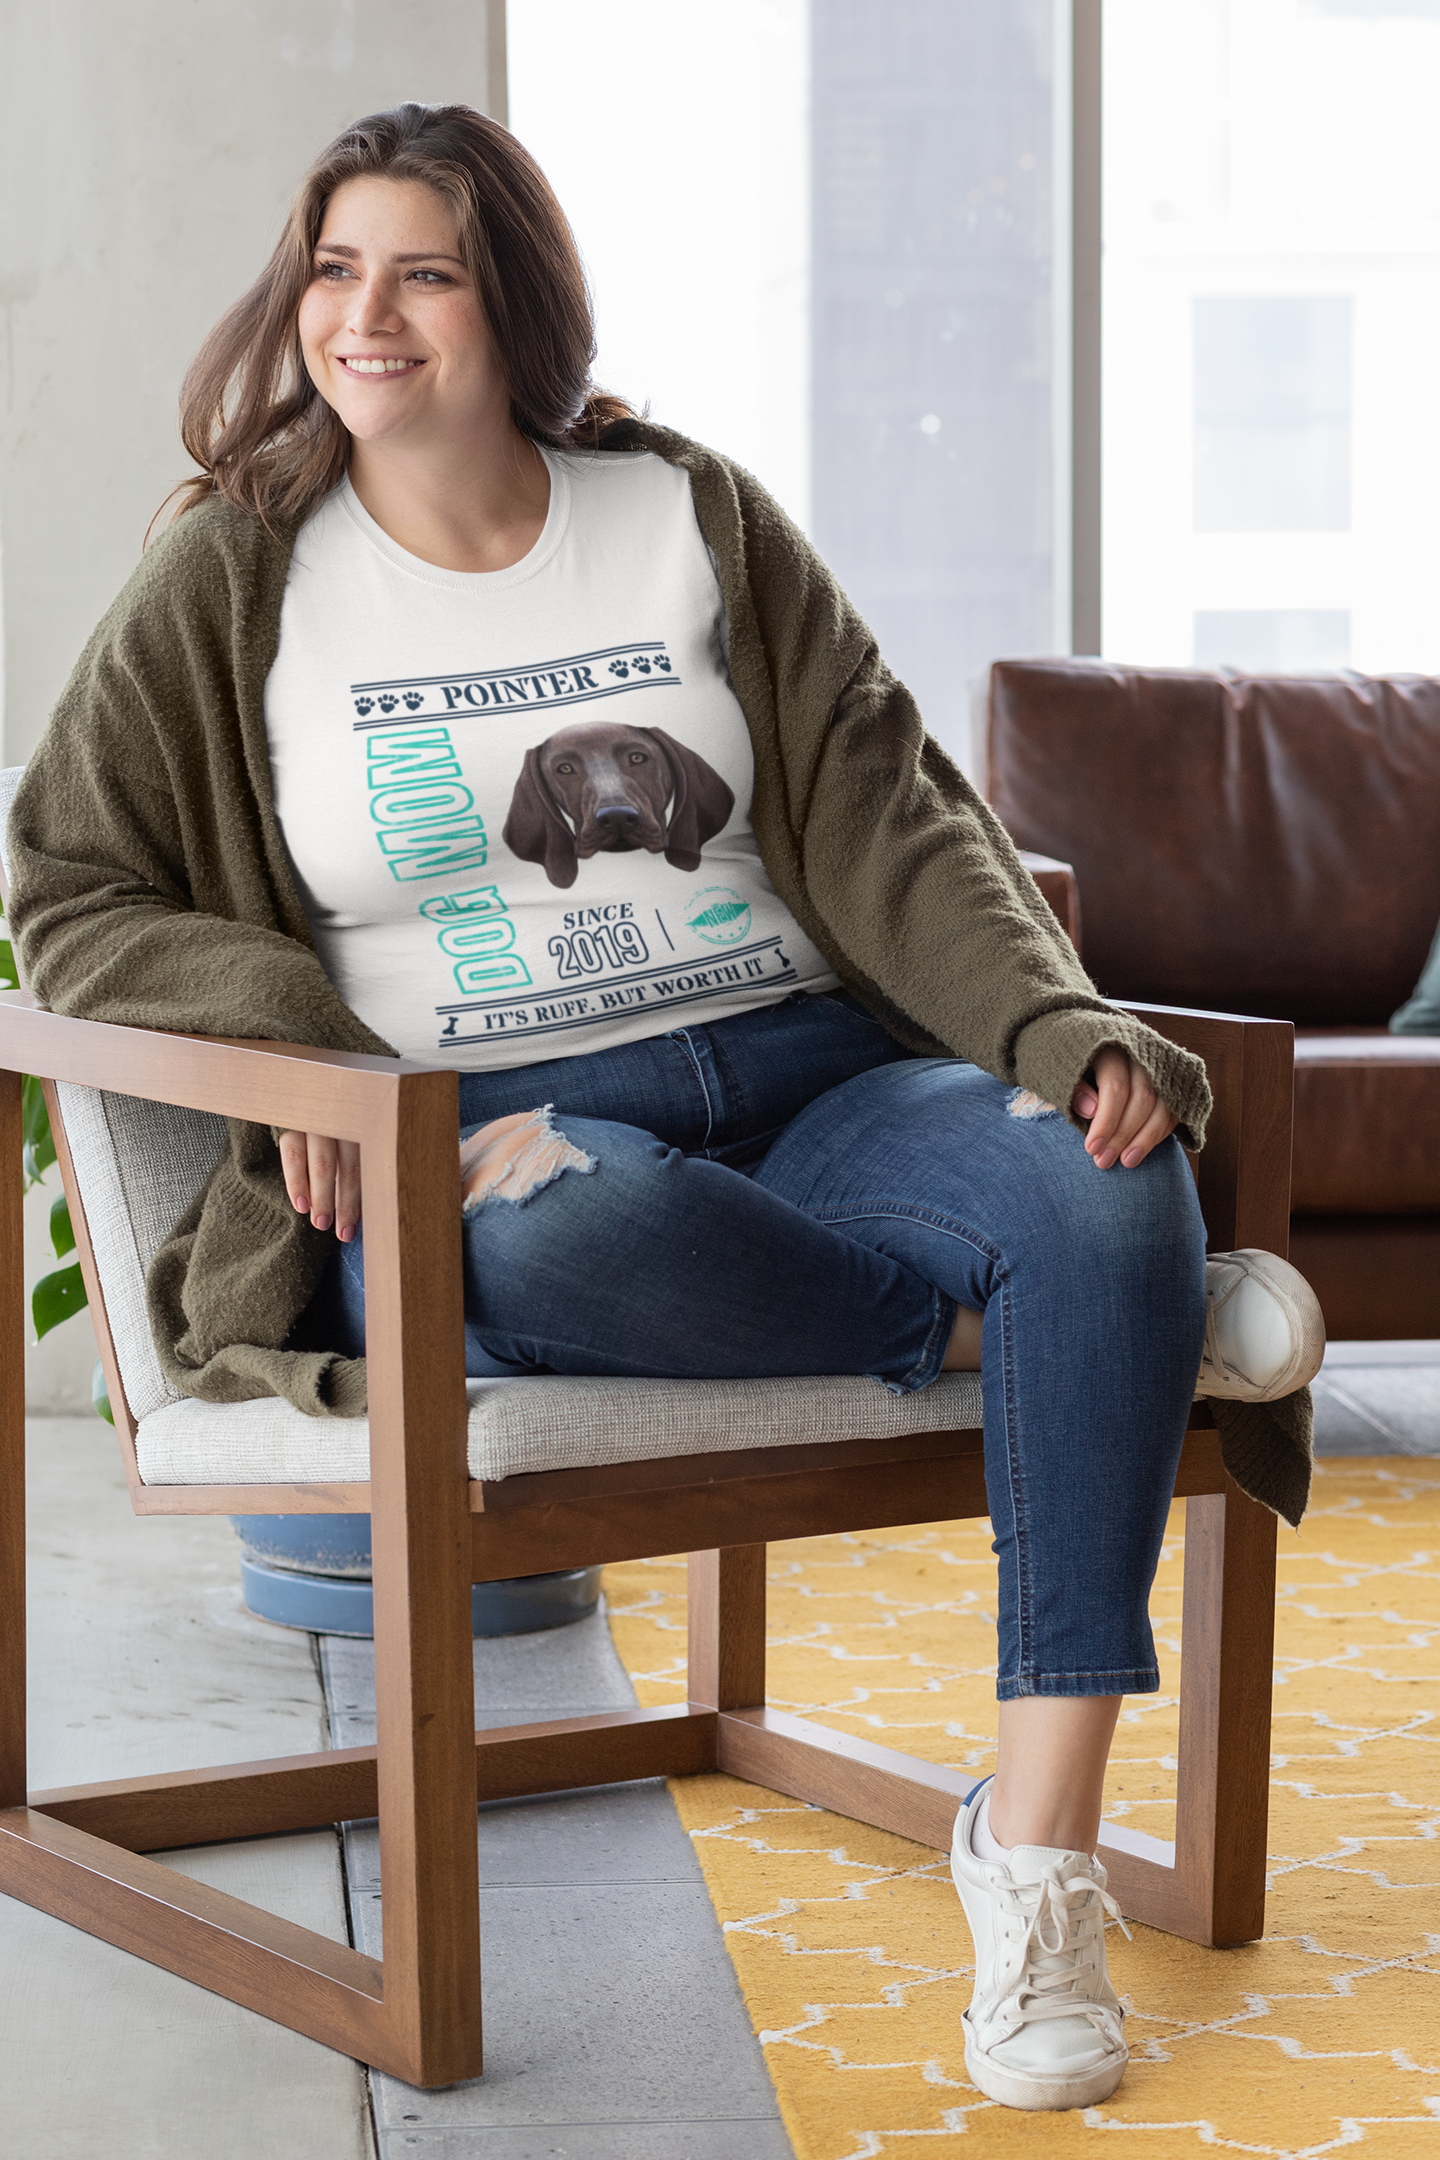 Personalized this tee with the year since you own a Pointer and a custom message. 😘 . . . #pointerpuppy #pointersofinstagram #germanpointer #gsplife #gspoftheday #germanshorthairedpointer #vizslapuppy #hungarianvizsla #vizslagram #pointerdog #pointerdoglove #pointerdogs #pointers #dogquotes #dogsofig #pointeroftheday #pointerdog #pointerdogs #pointermom #pointermoms #pointermommy